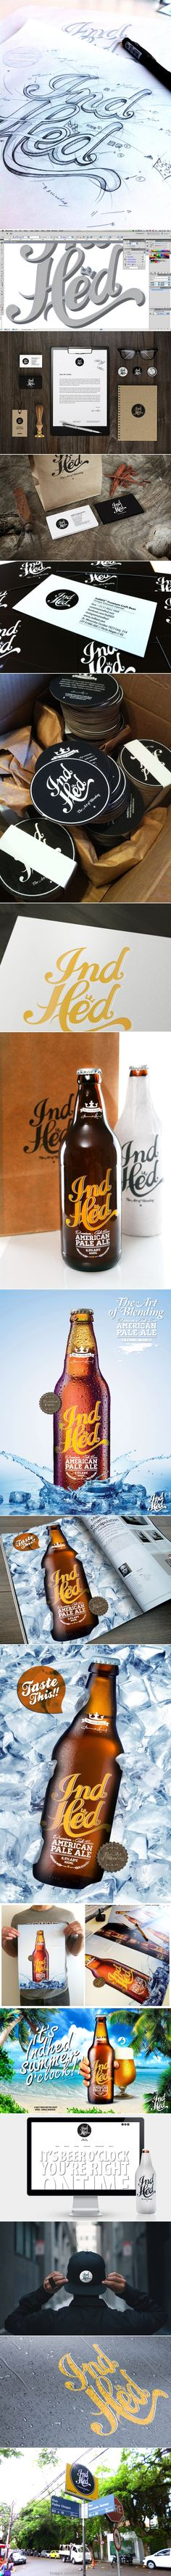 IndHed Premium Craft Beer Branding